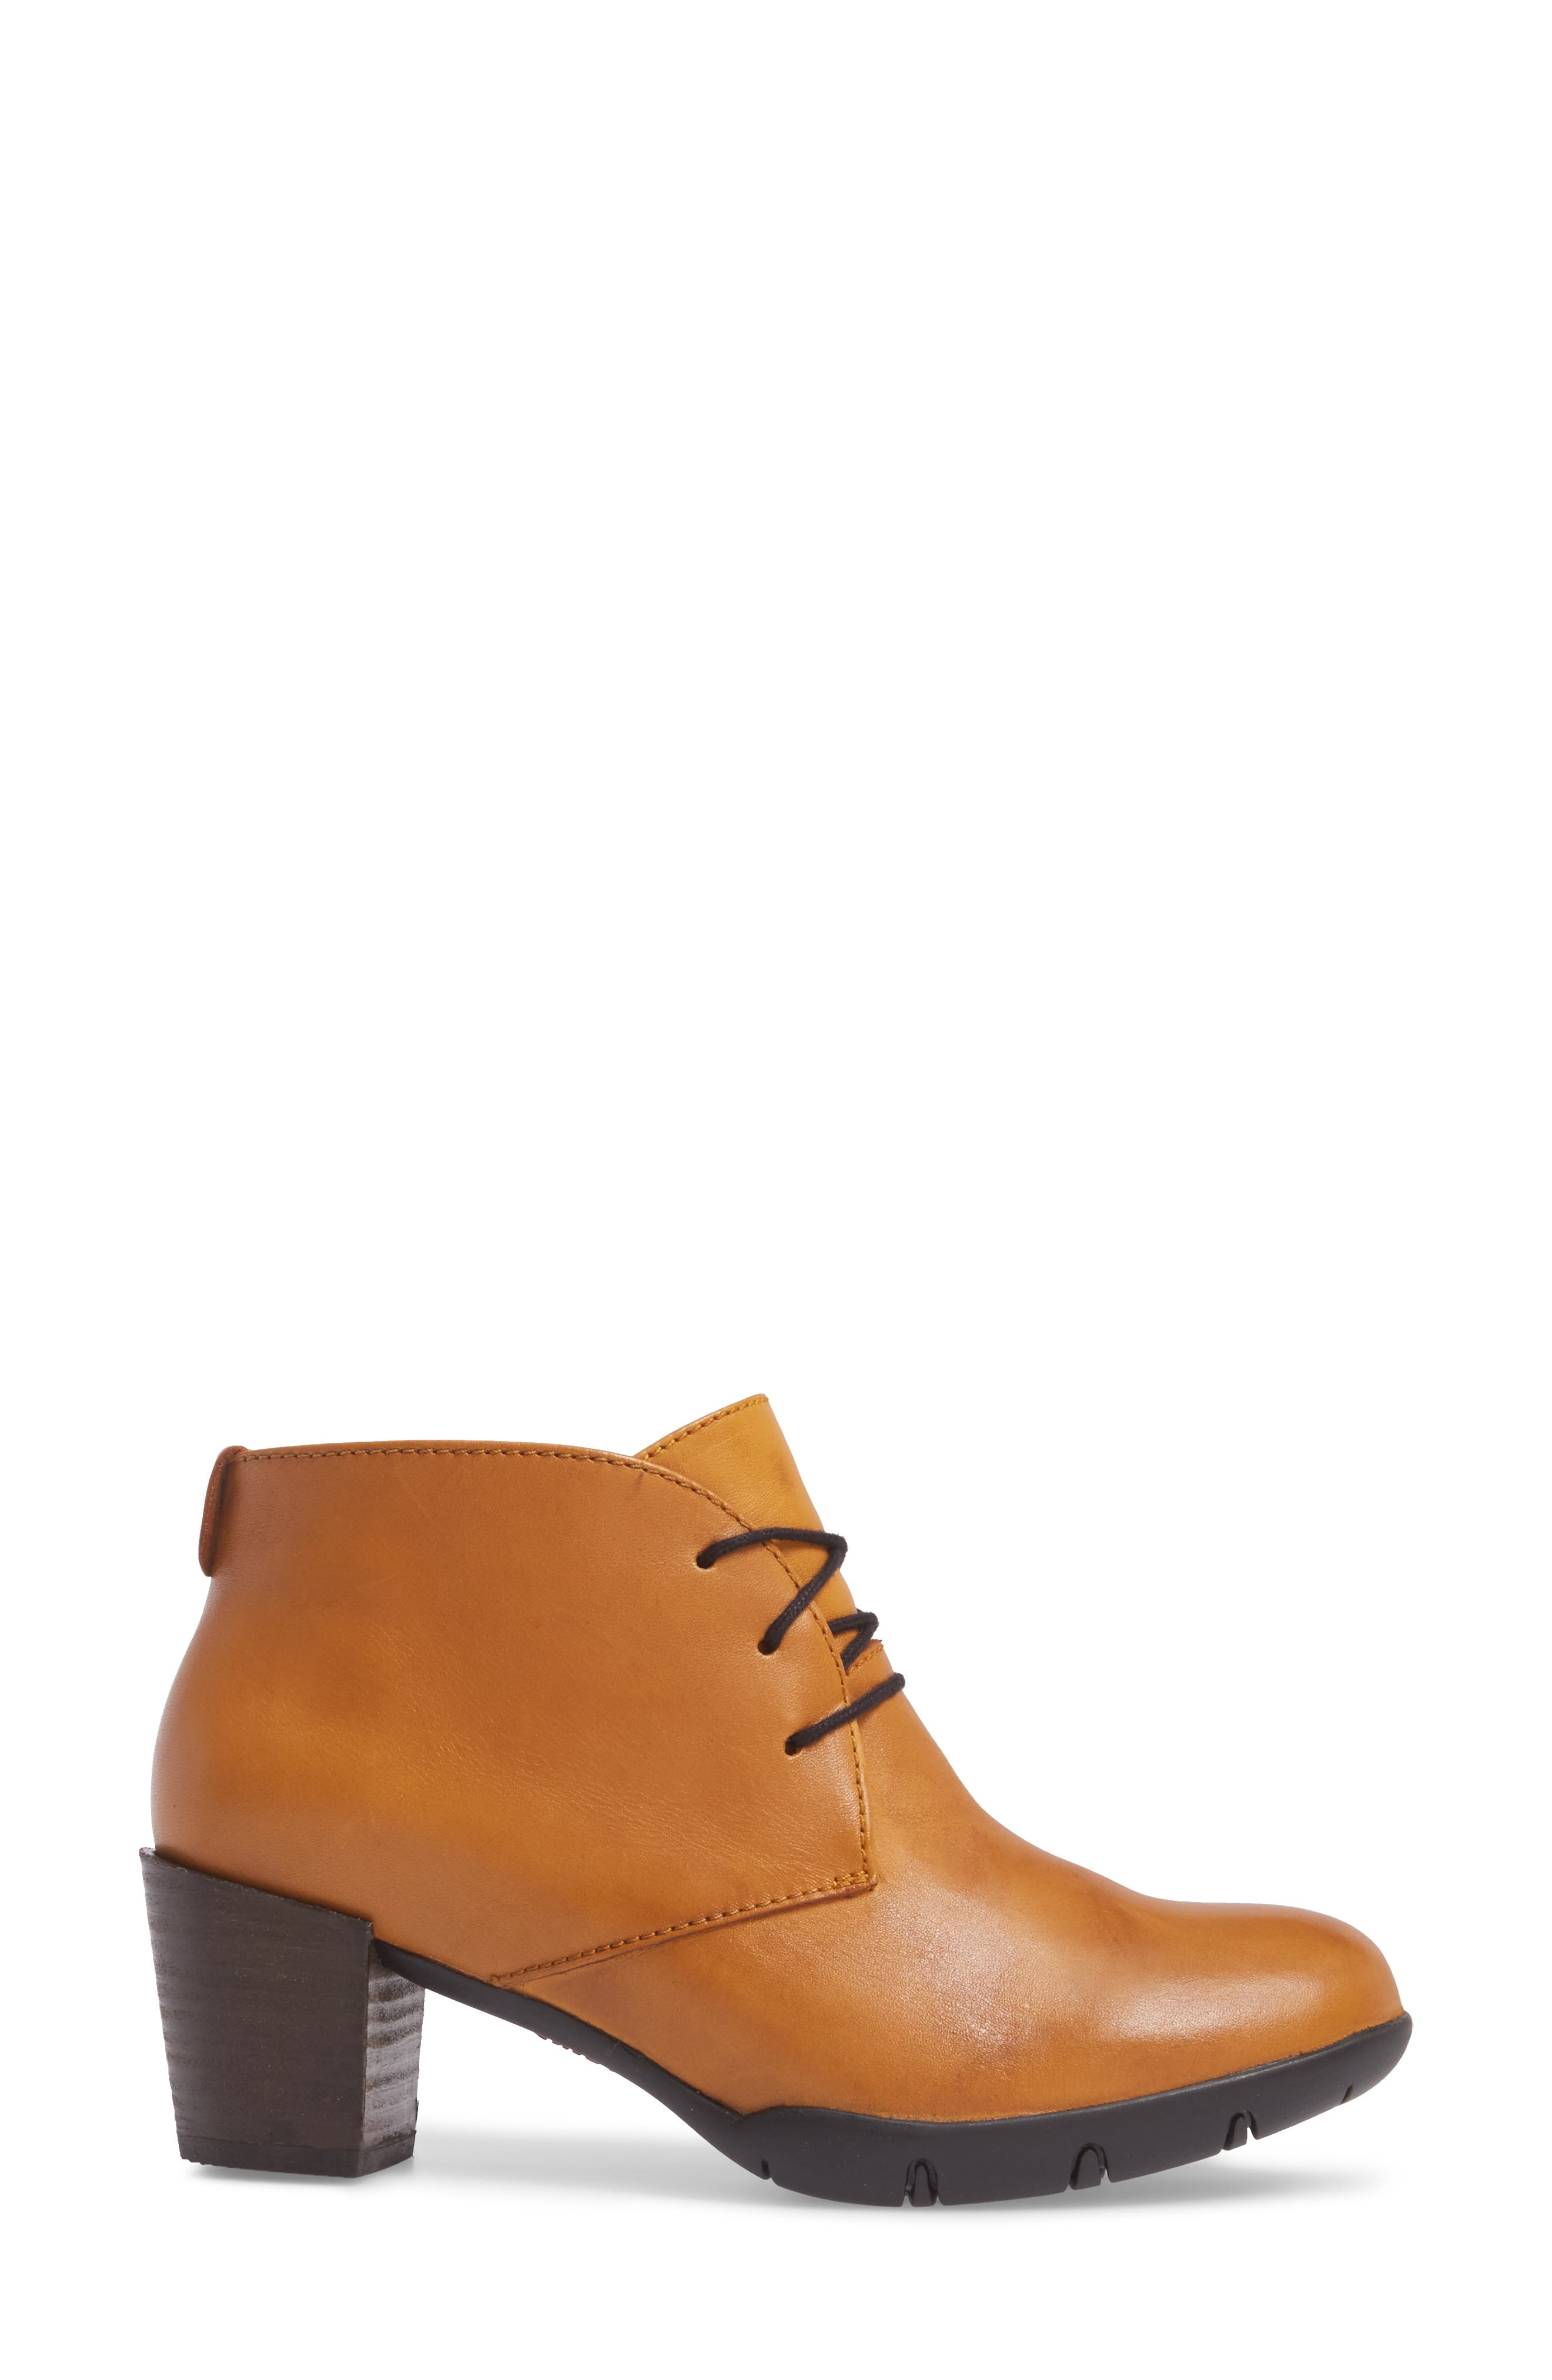 Bighorn Bootie,                             Alternate thumbnail 3, color,                             Curry Leather